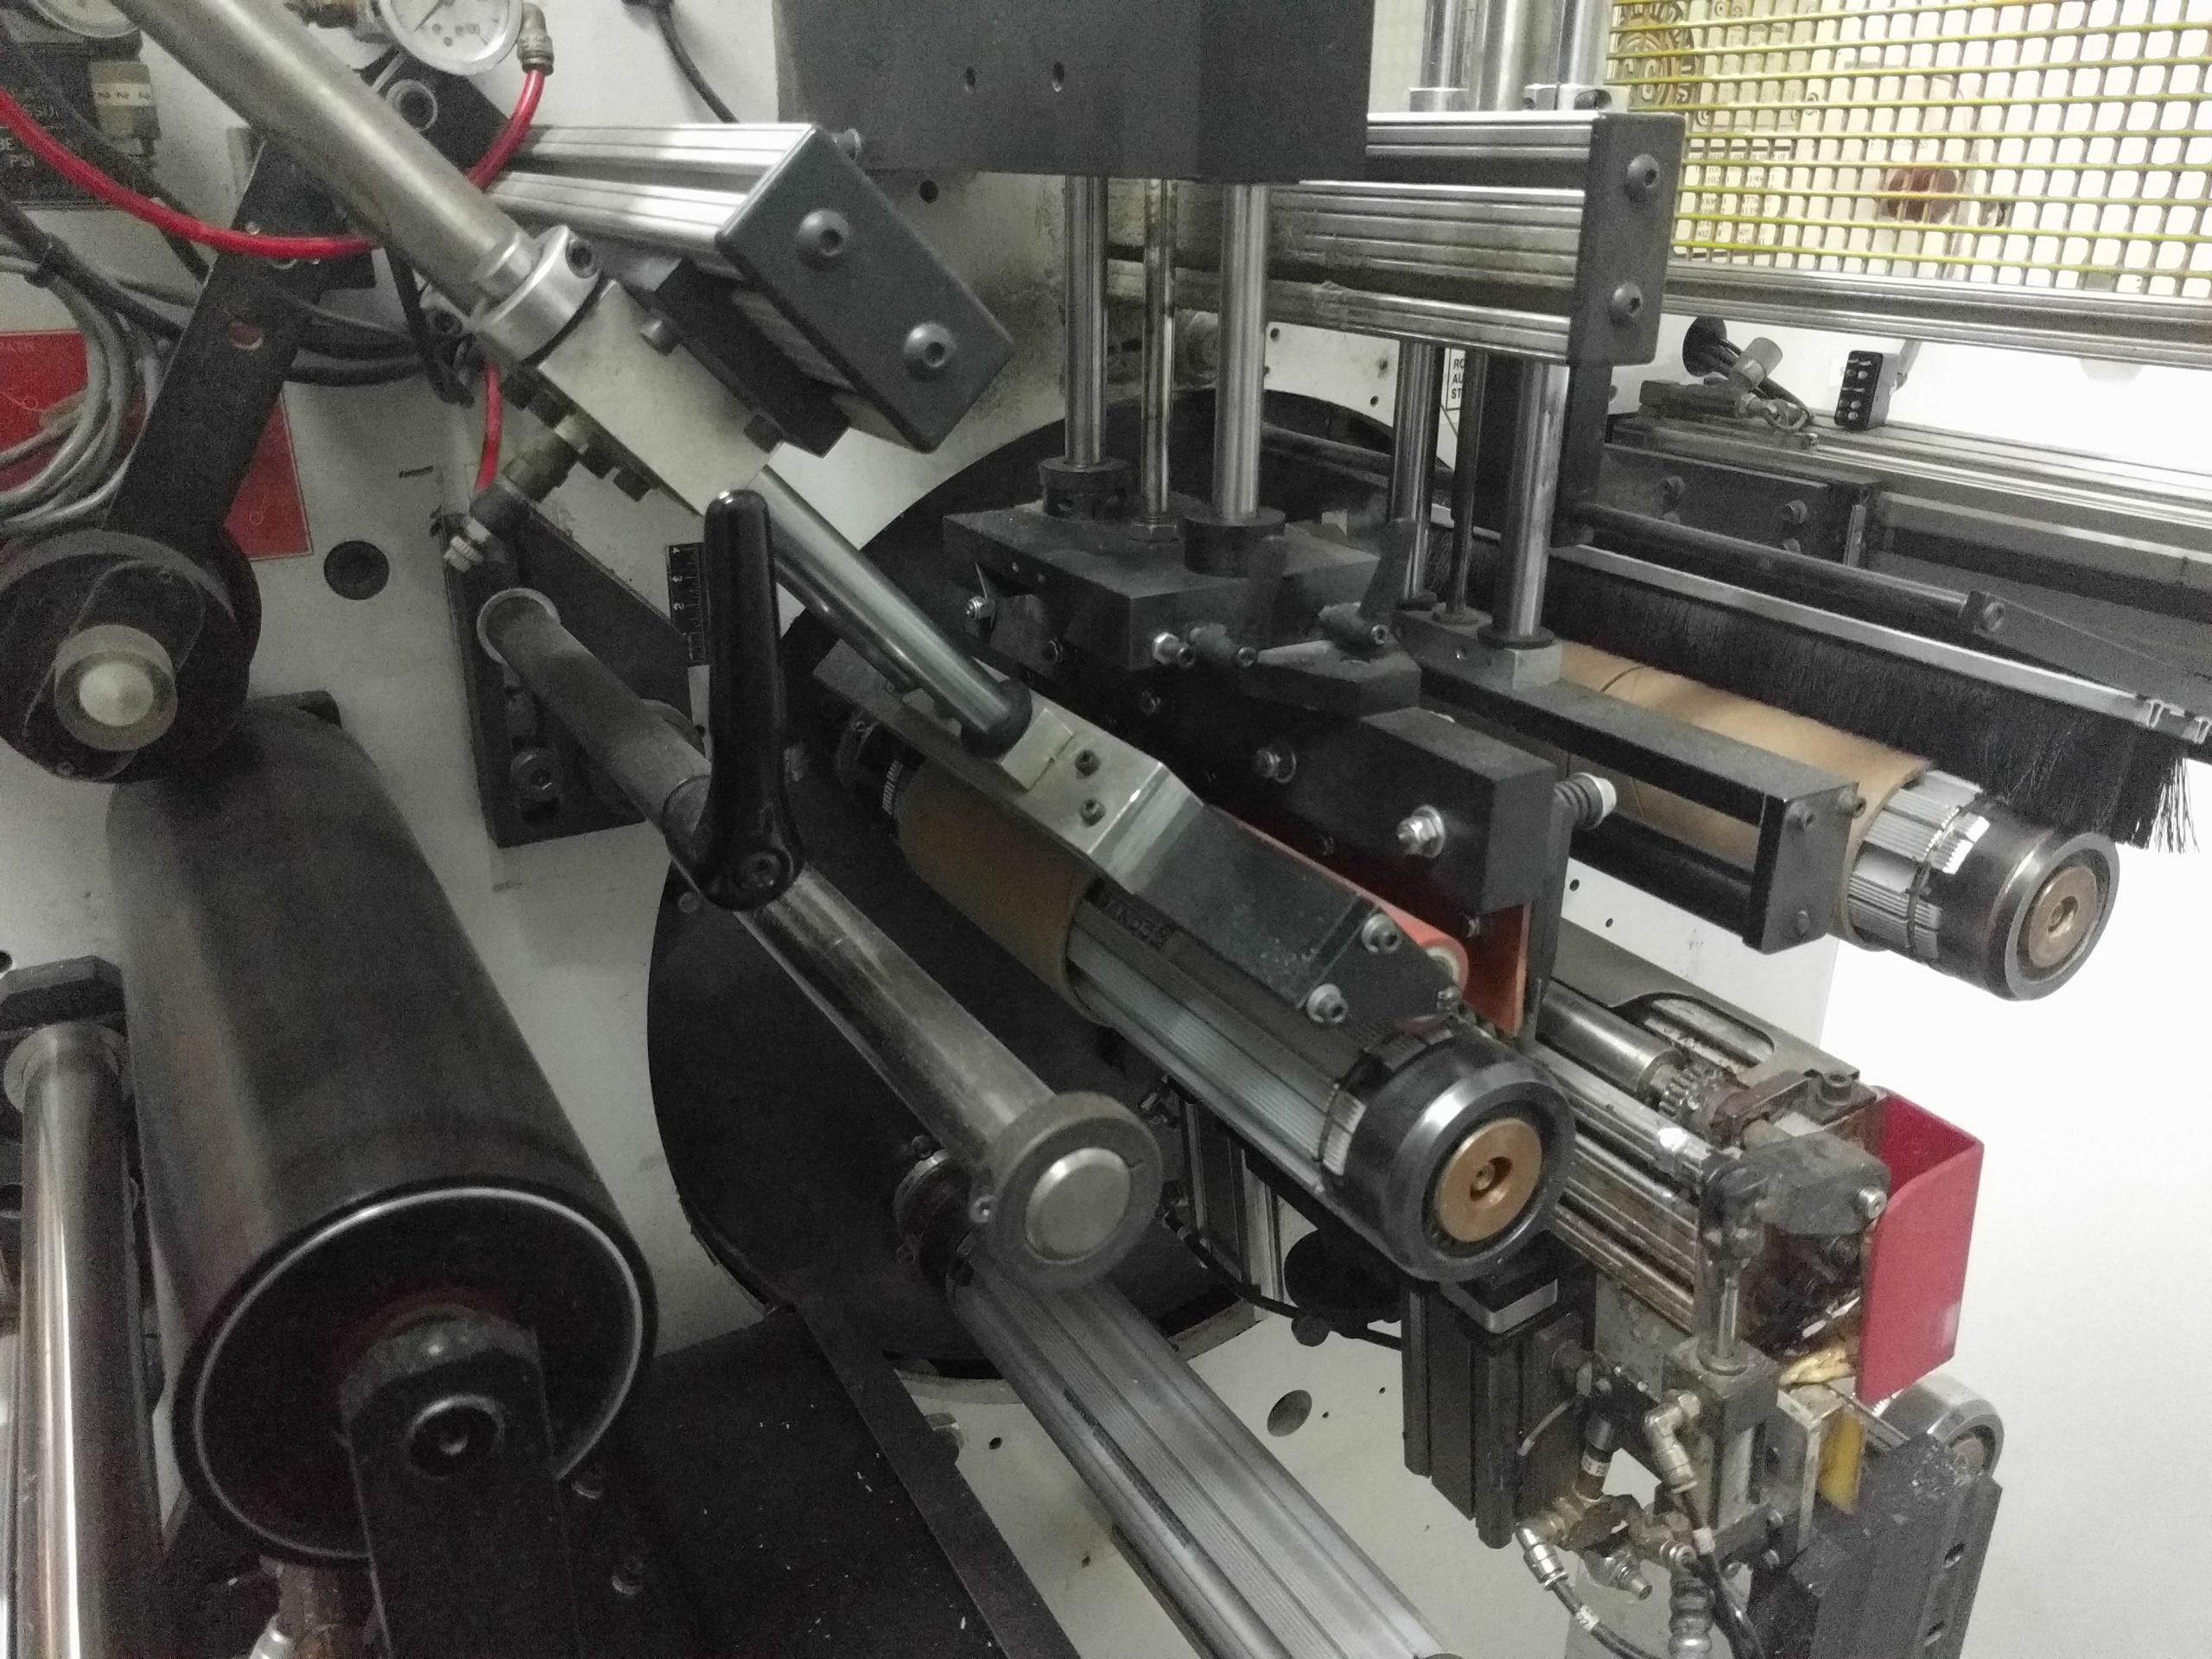 CTC Turret Rewinder - Used Flexo Printing Presses and Used Flexographic Equipment-4